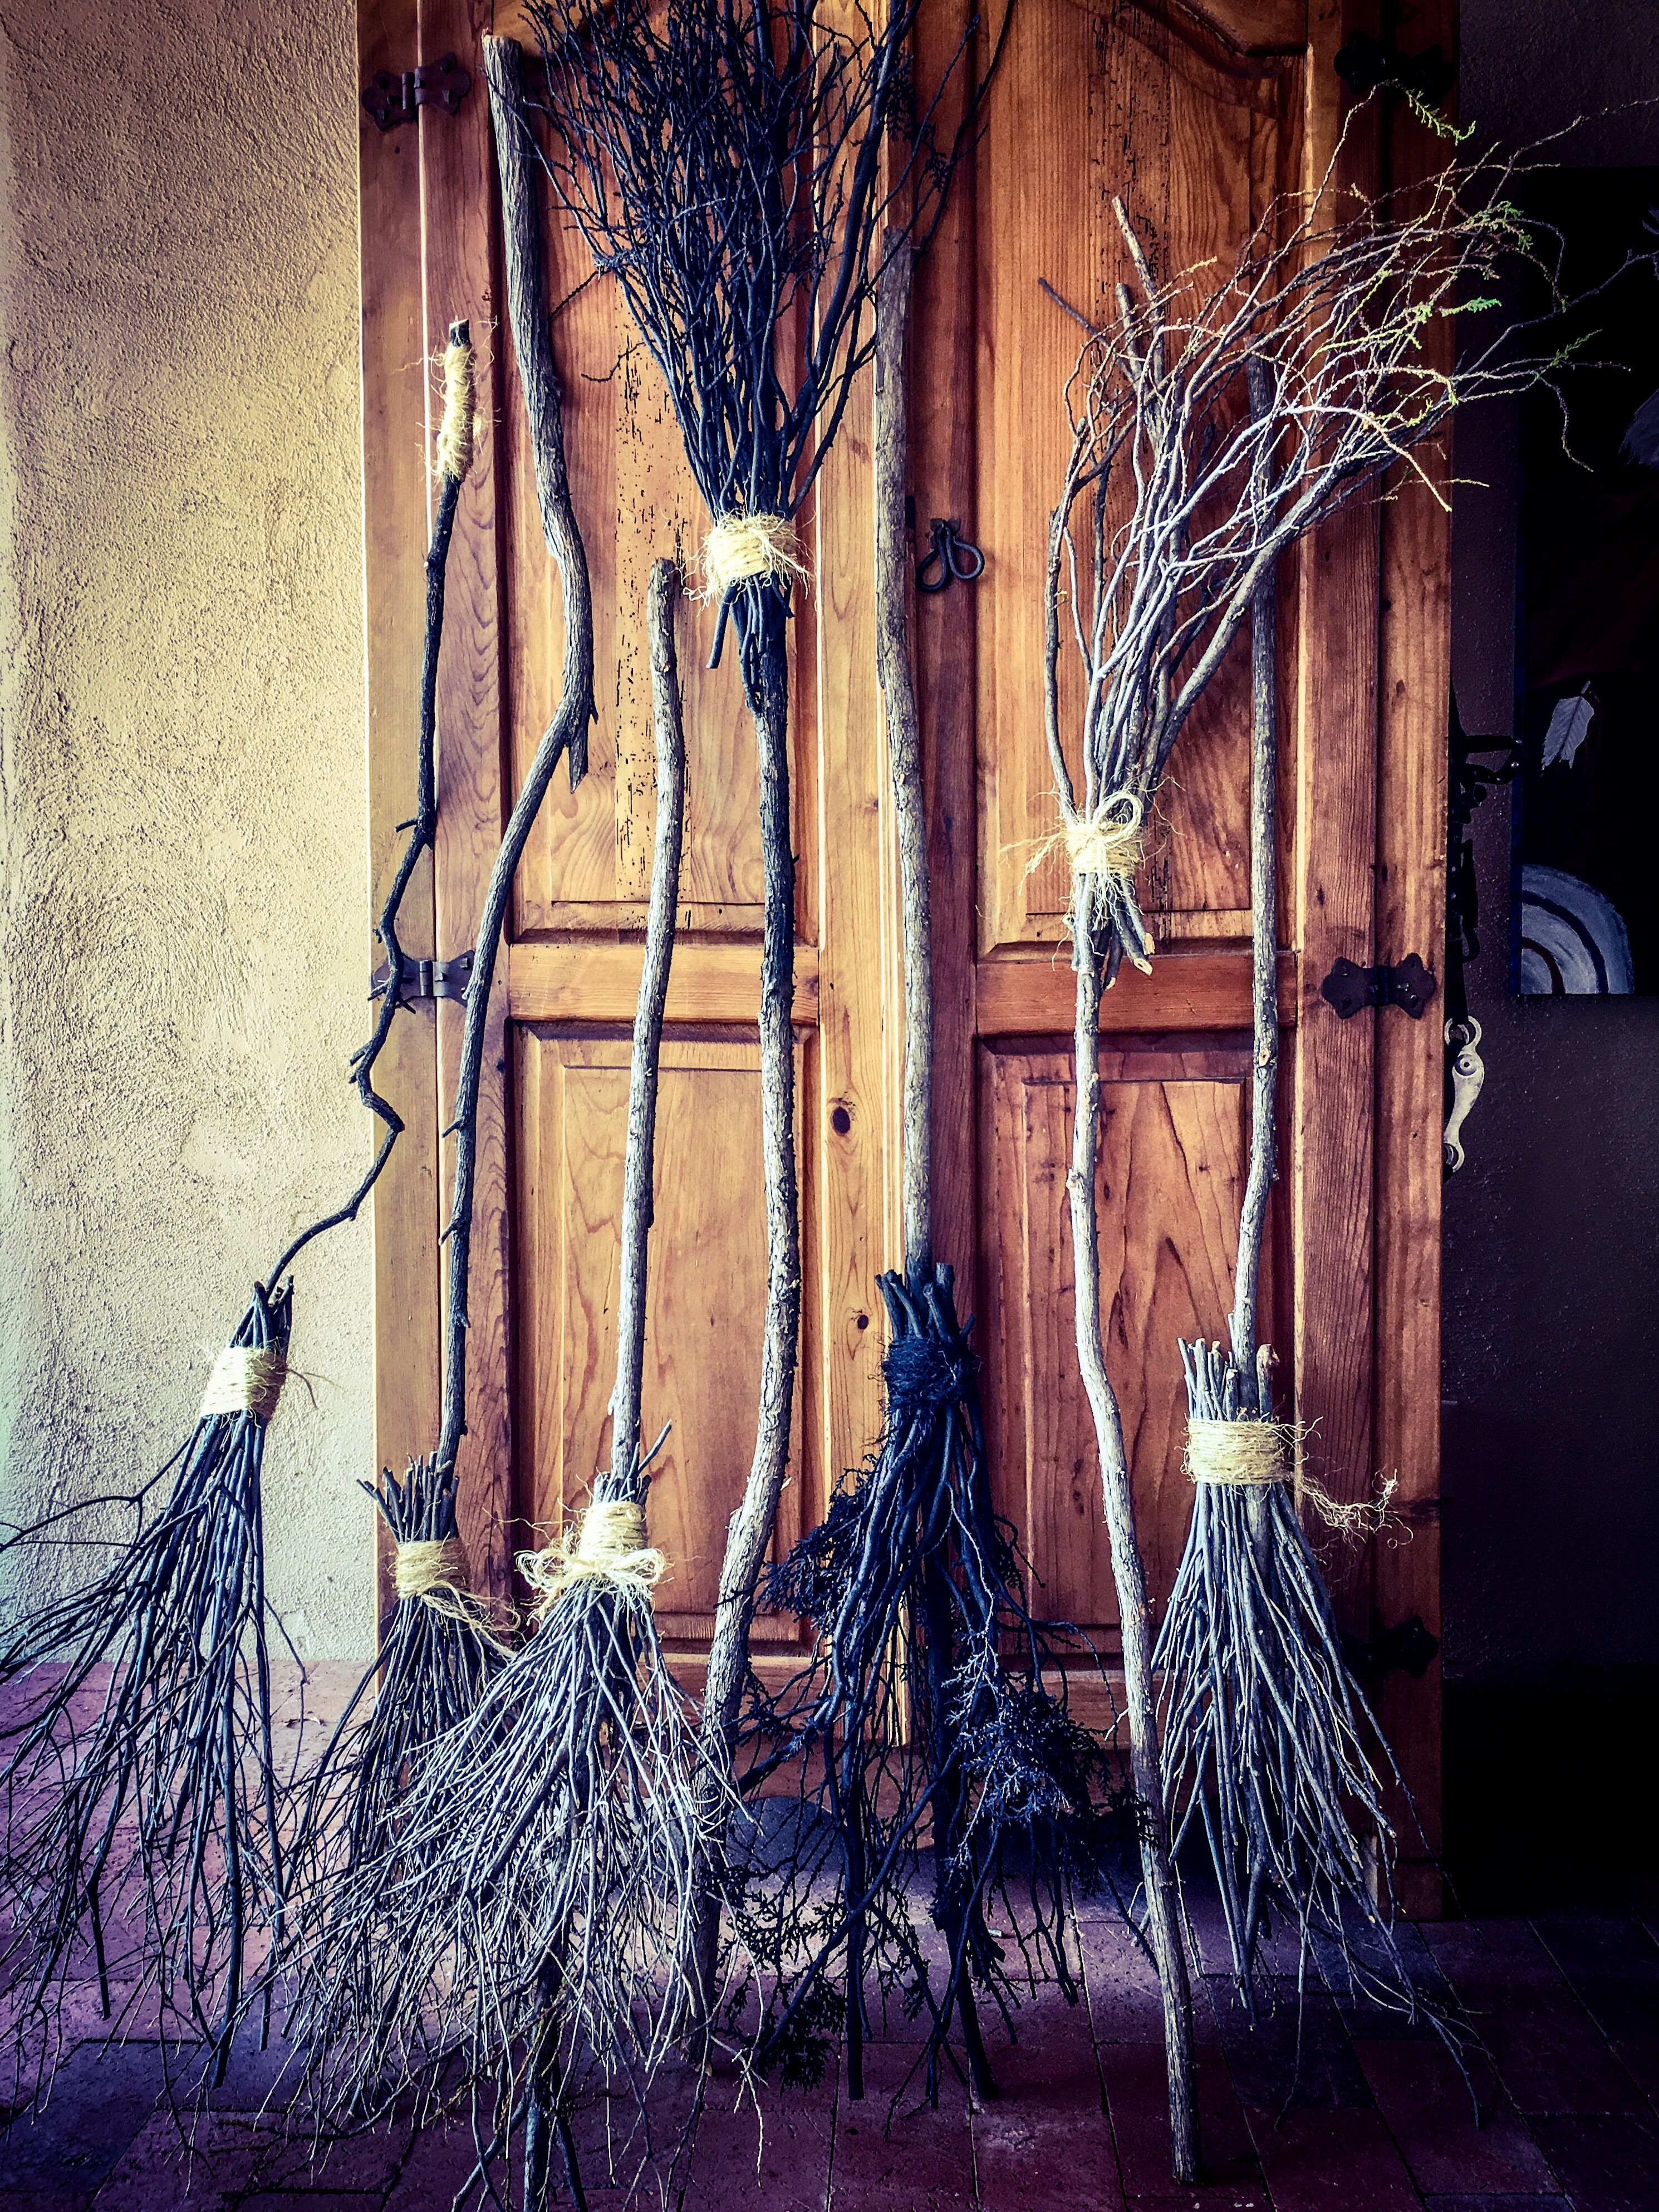 Handmade Witches Brooms From Evergreen And Texas Sage Trimmings Add Some Duct Tape And Cover With Ju Community Halloween Party Halloween Decorations Halloween